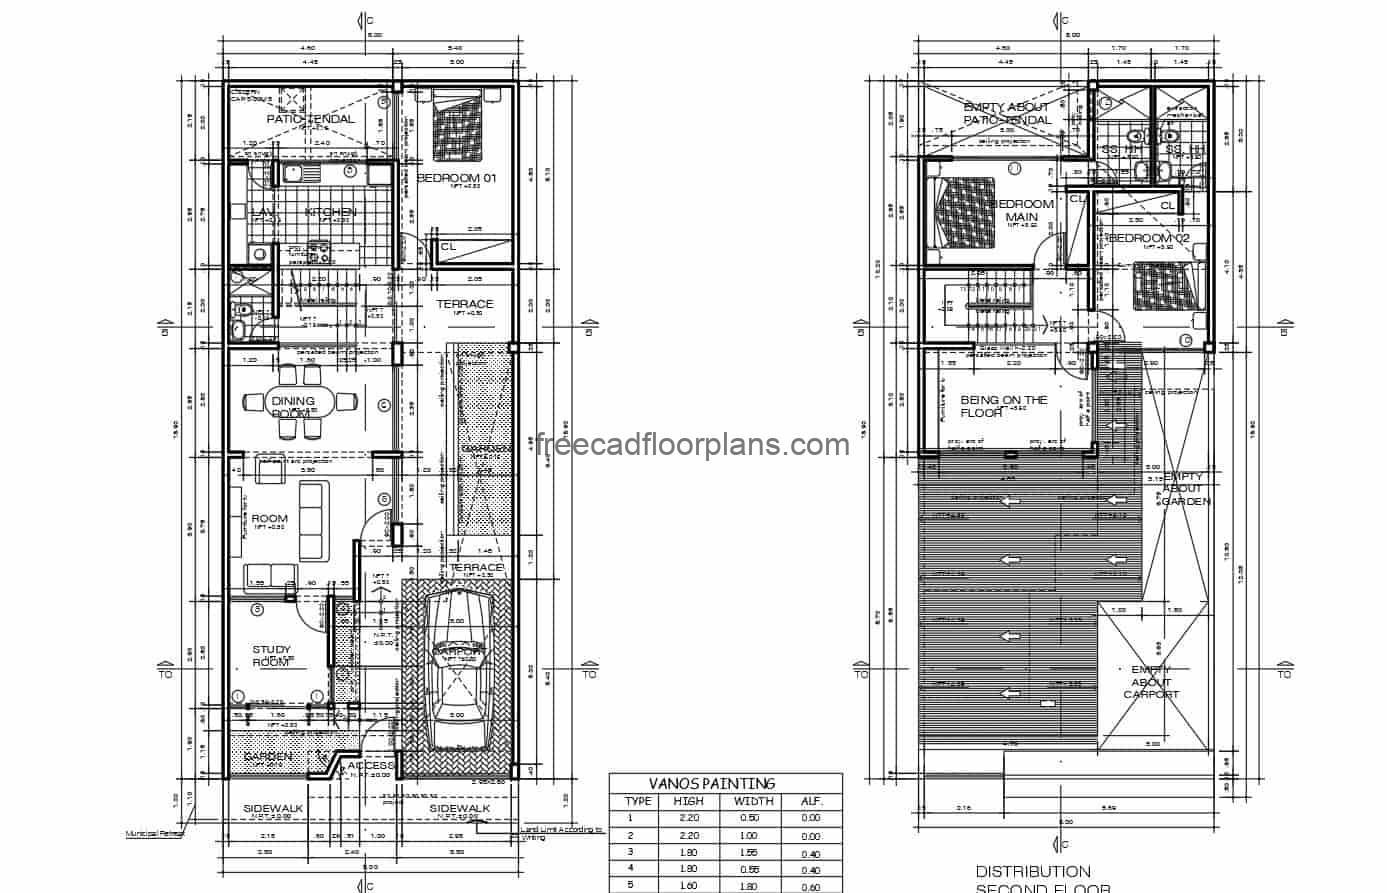 Complete project plans in DWG format from Autocad of a two level rectangular residence with three bedrooms in the second level, first level social area with garage for one vehicle, living room, kitchen, dining room, study room and patio area. Architectural, dimensional, electrical, sanitary, foundation and structural plans, with blocks and CAD furniture details. Blueprints in DWG for free download.